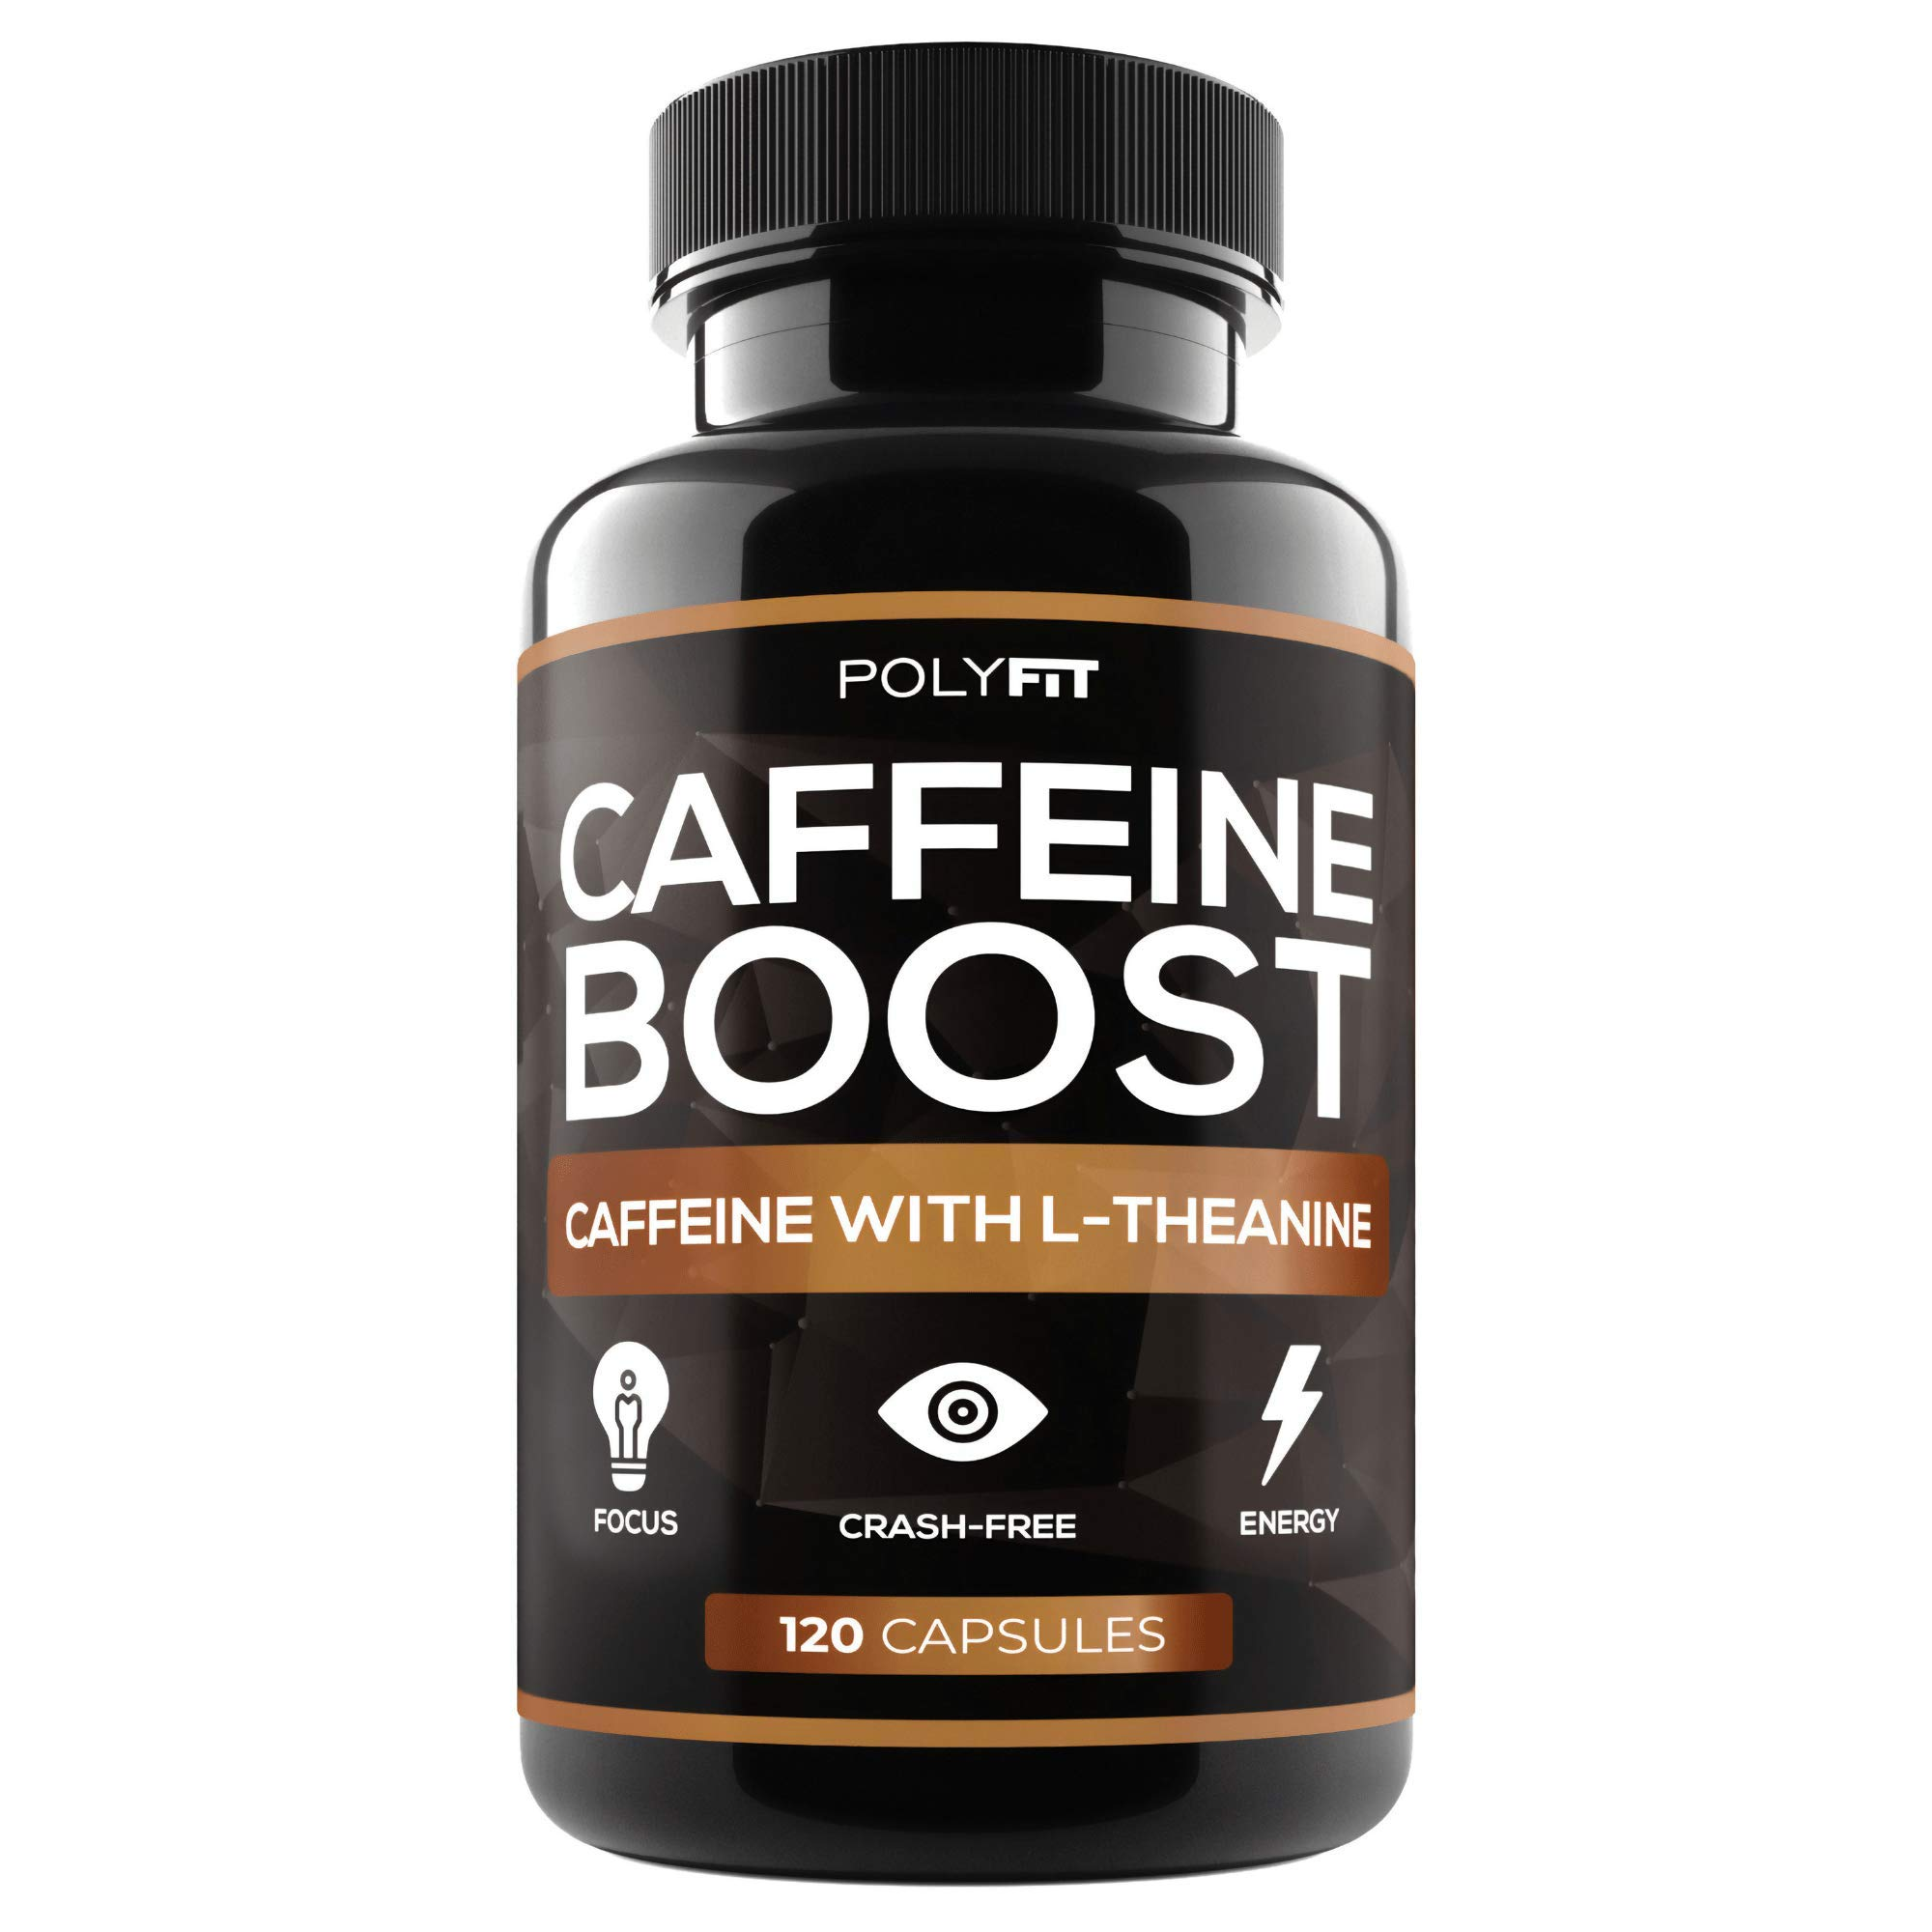 Caffeine Pills with L-Theanine - 120 Capsules - Energy & Focus Supplement - 100mg Caffiene & 200mg LTheanine Per Serving by Polyfit